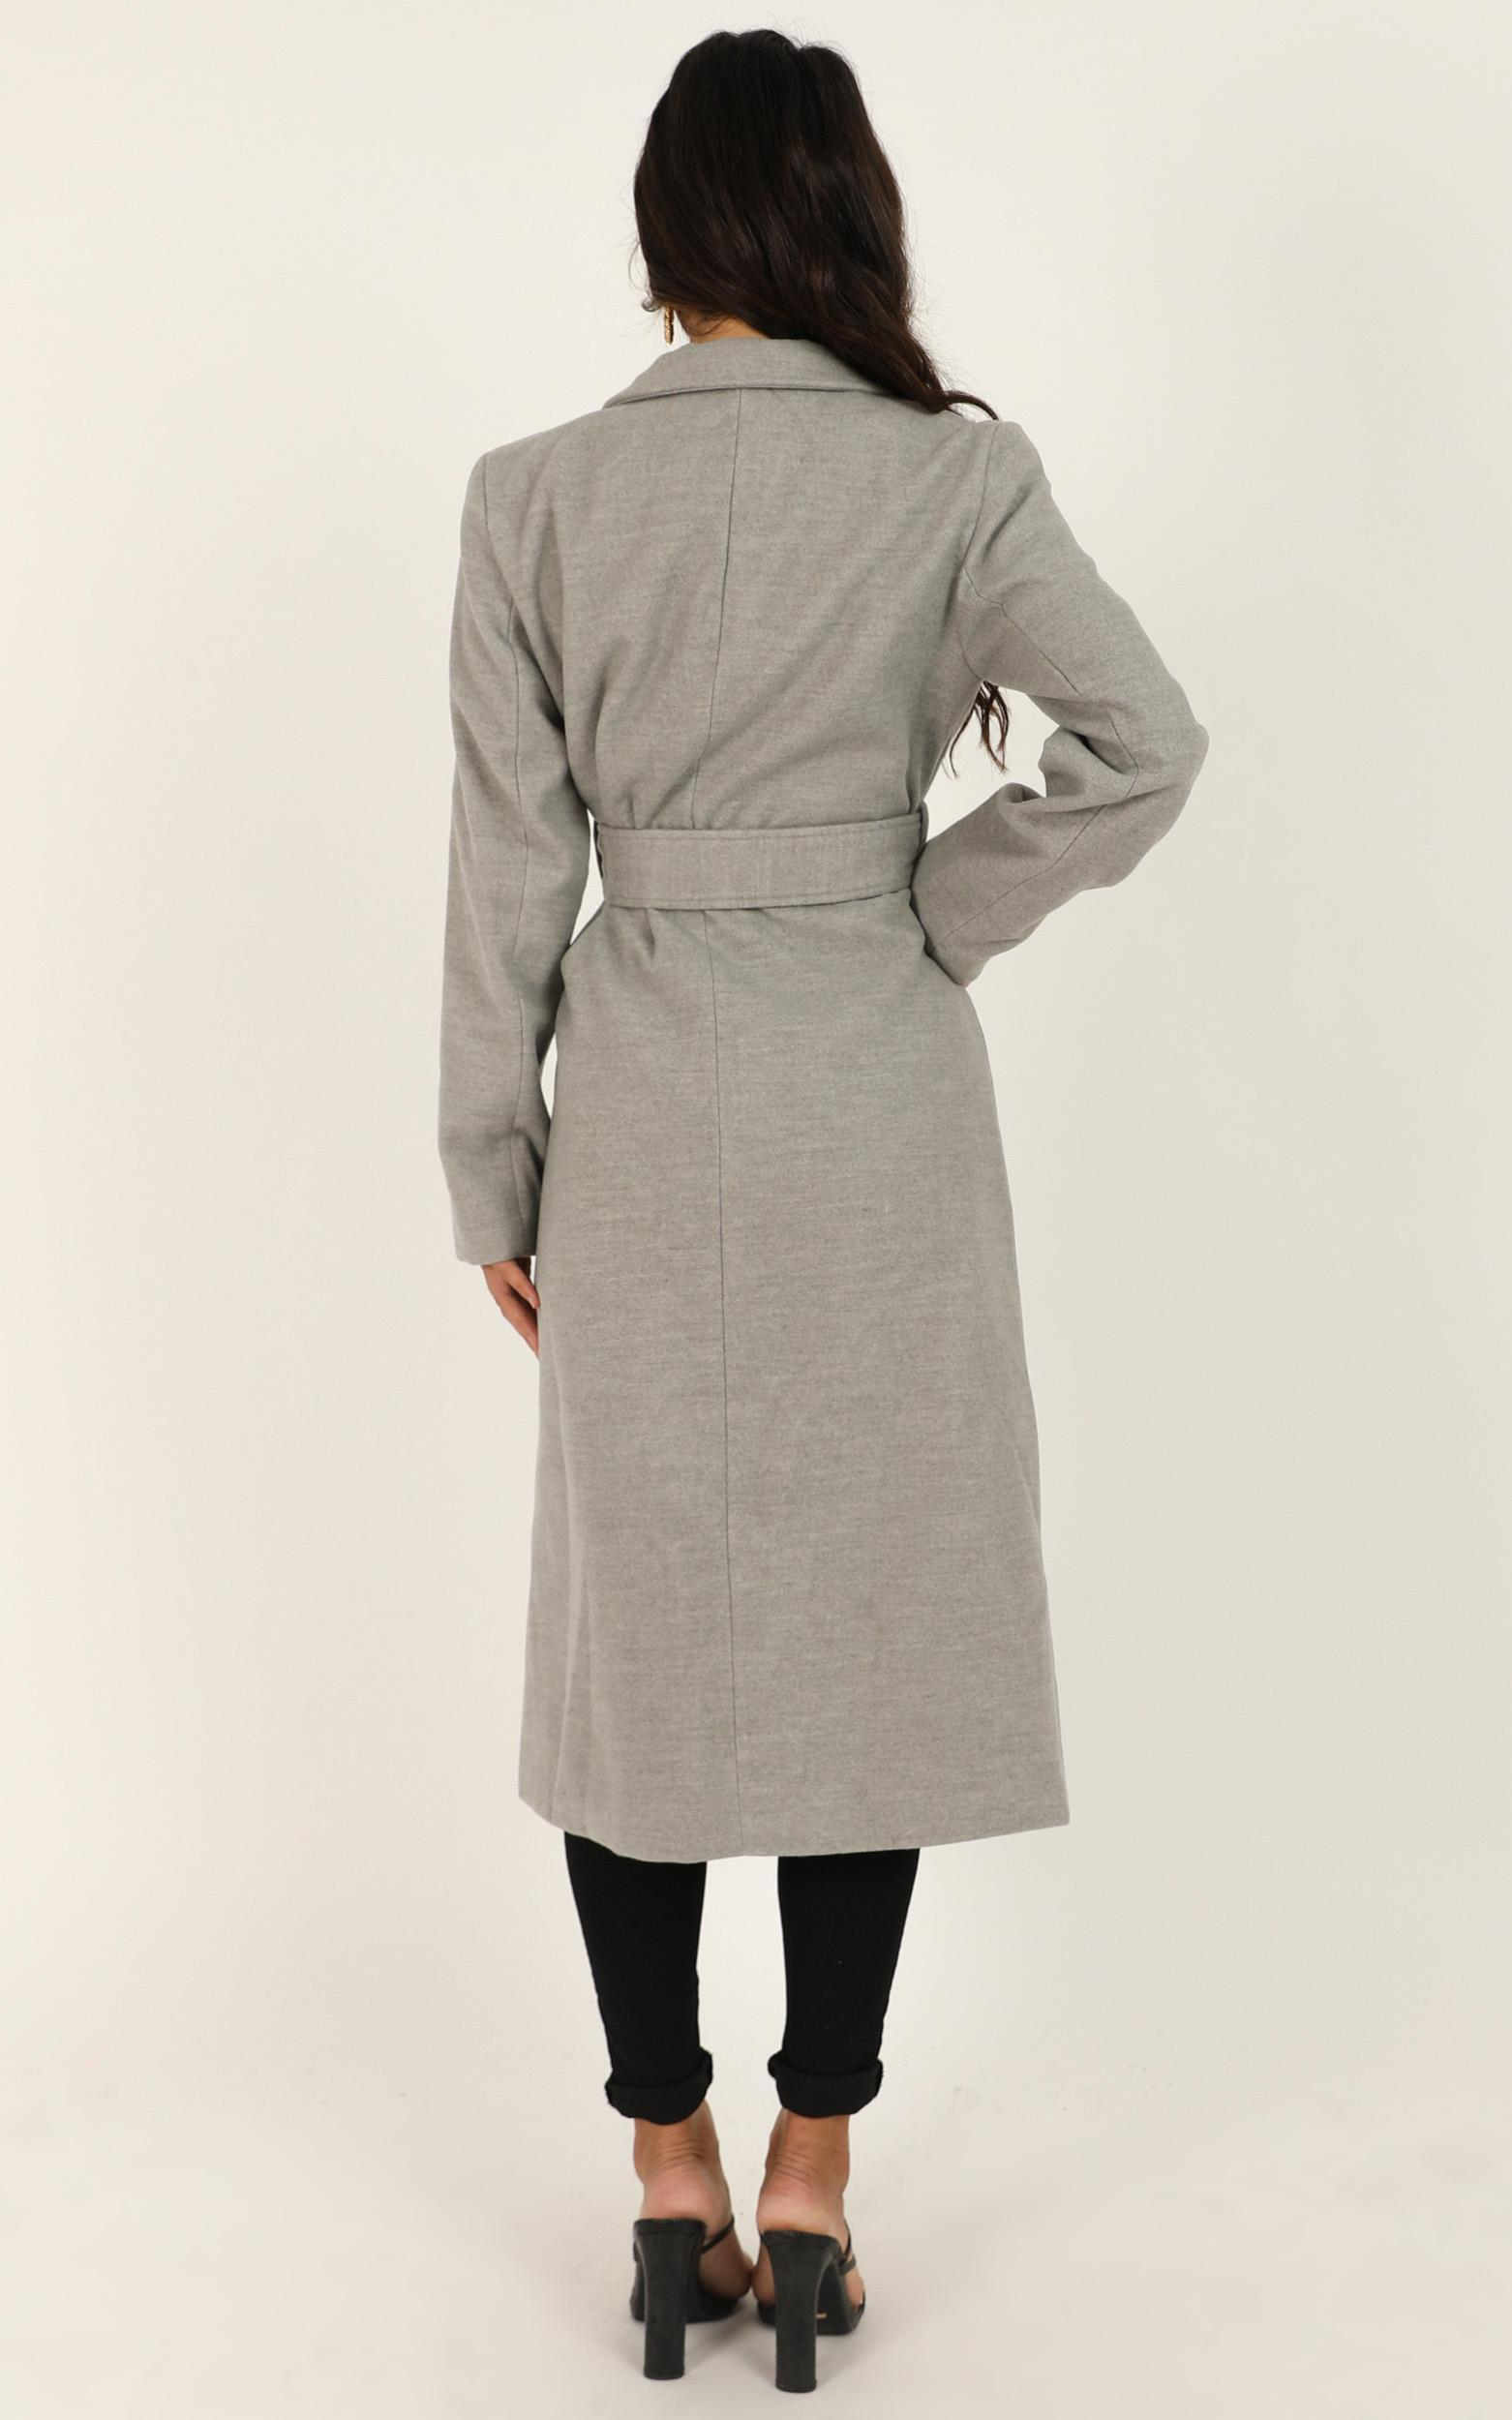 Green with Envy Coat in grey marle - 18 (XXXL), Grey, hi-res image number null